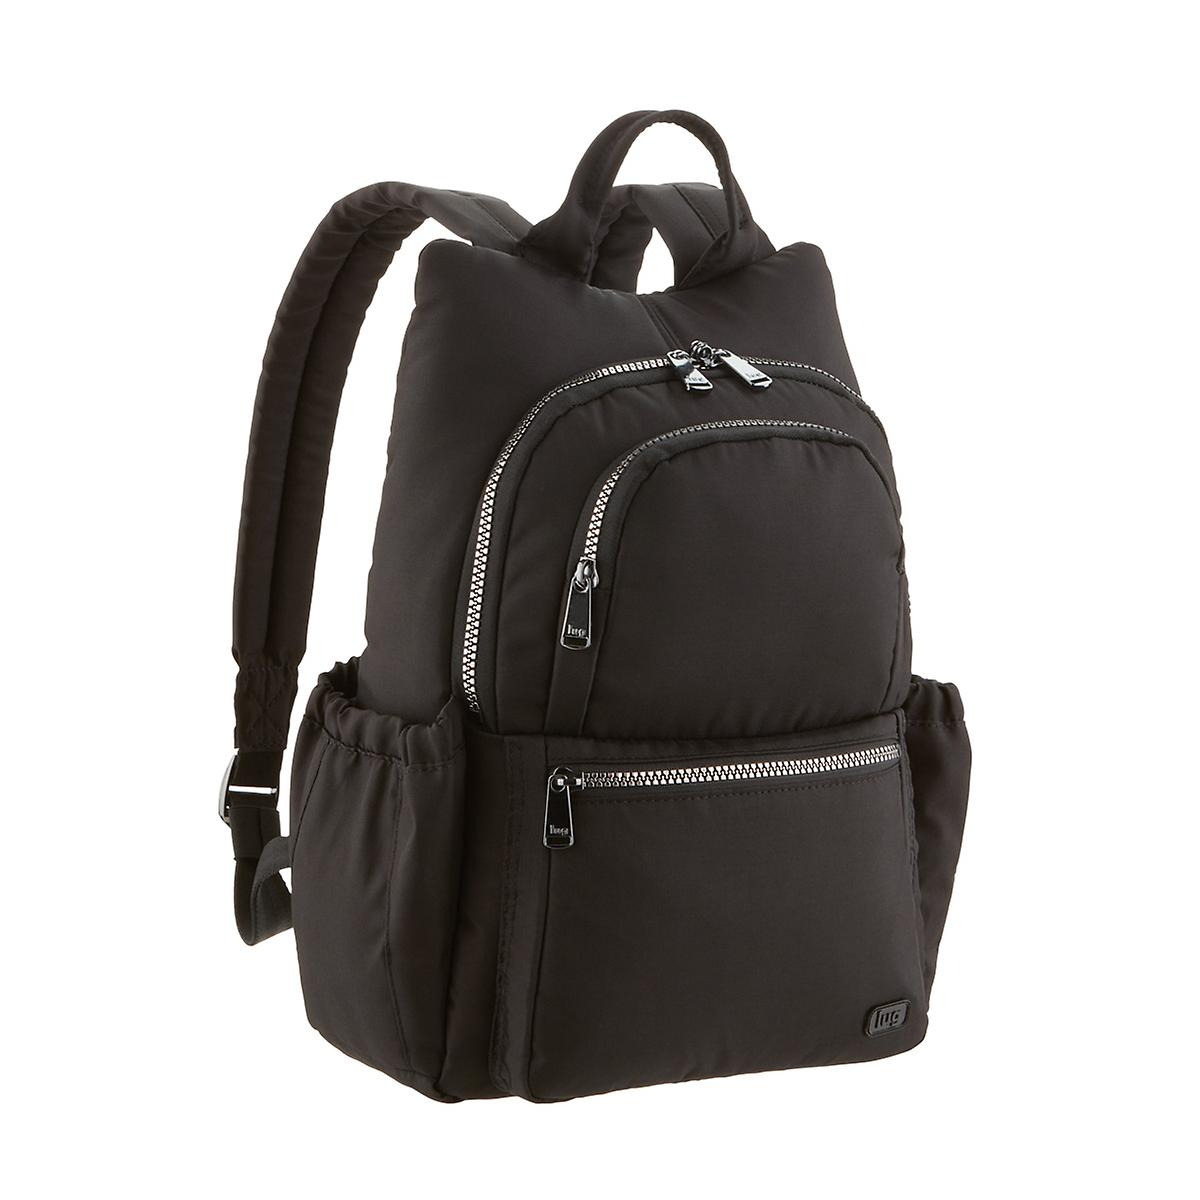 Lug Black Hatchback Mini Backpack